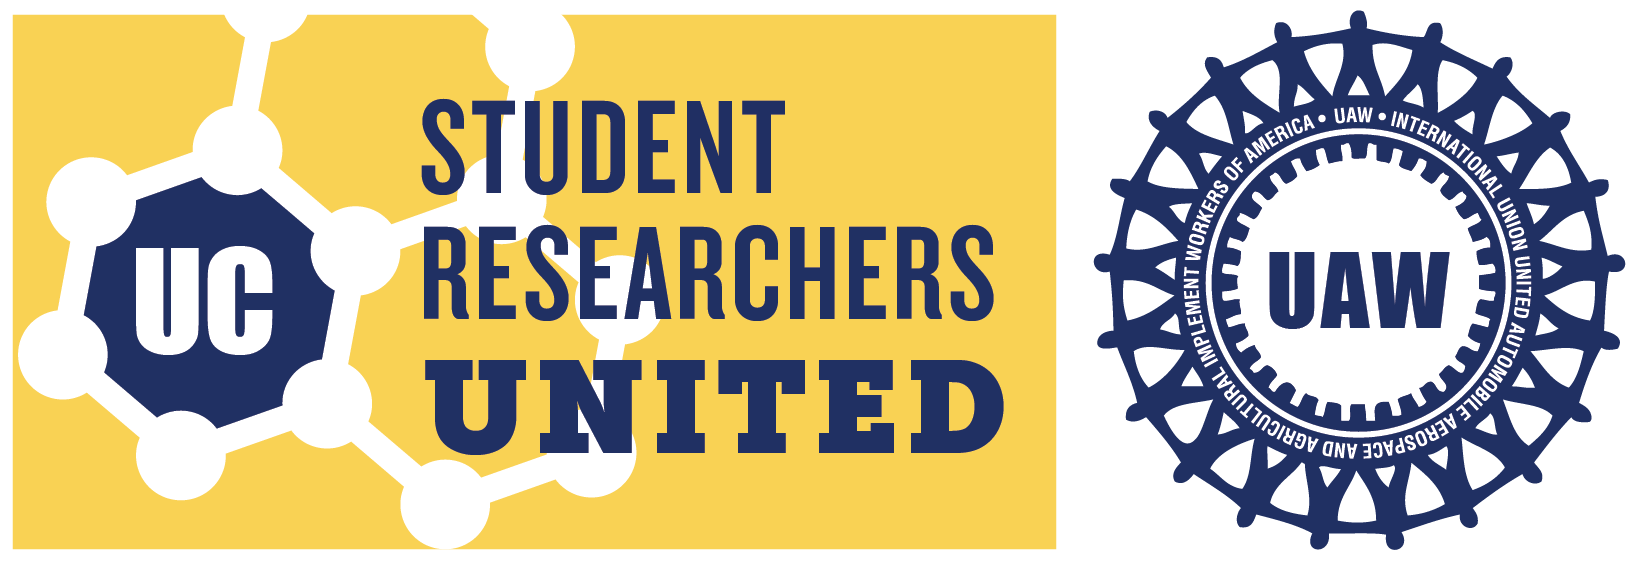 Student Researchers United at the University of California (SRU-UAW)